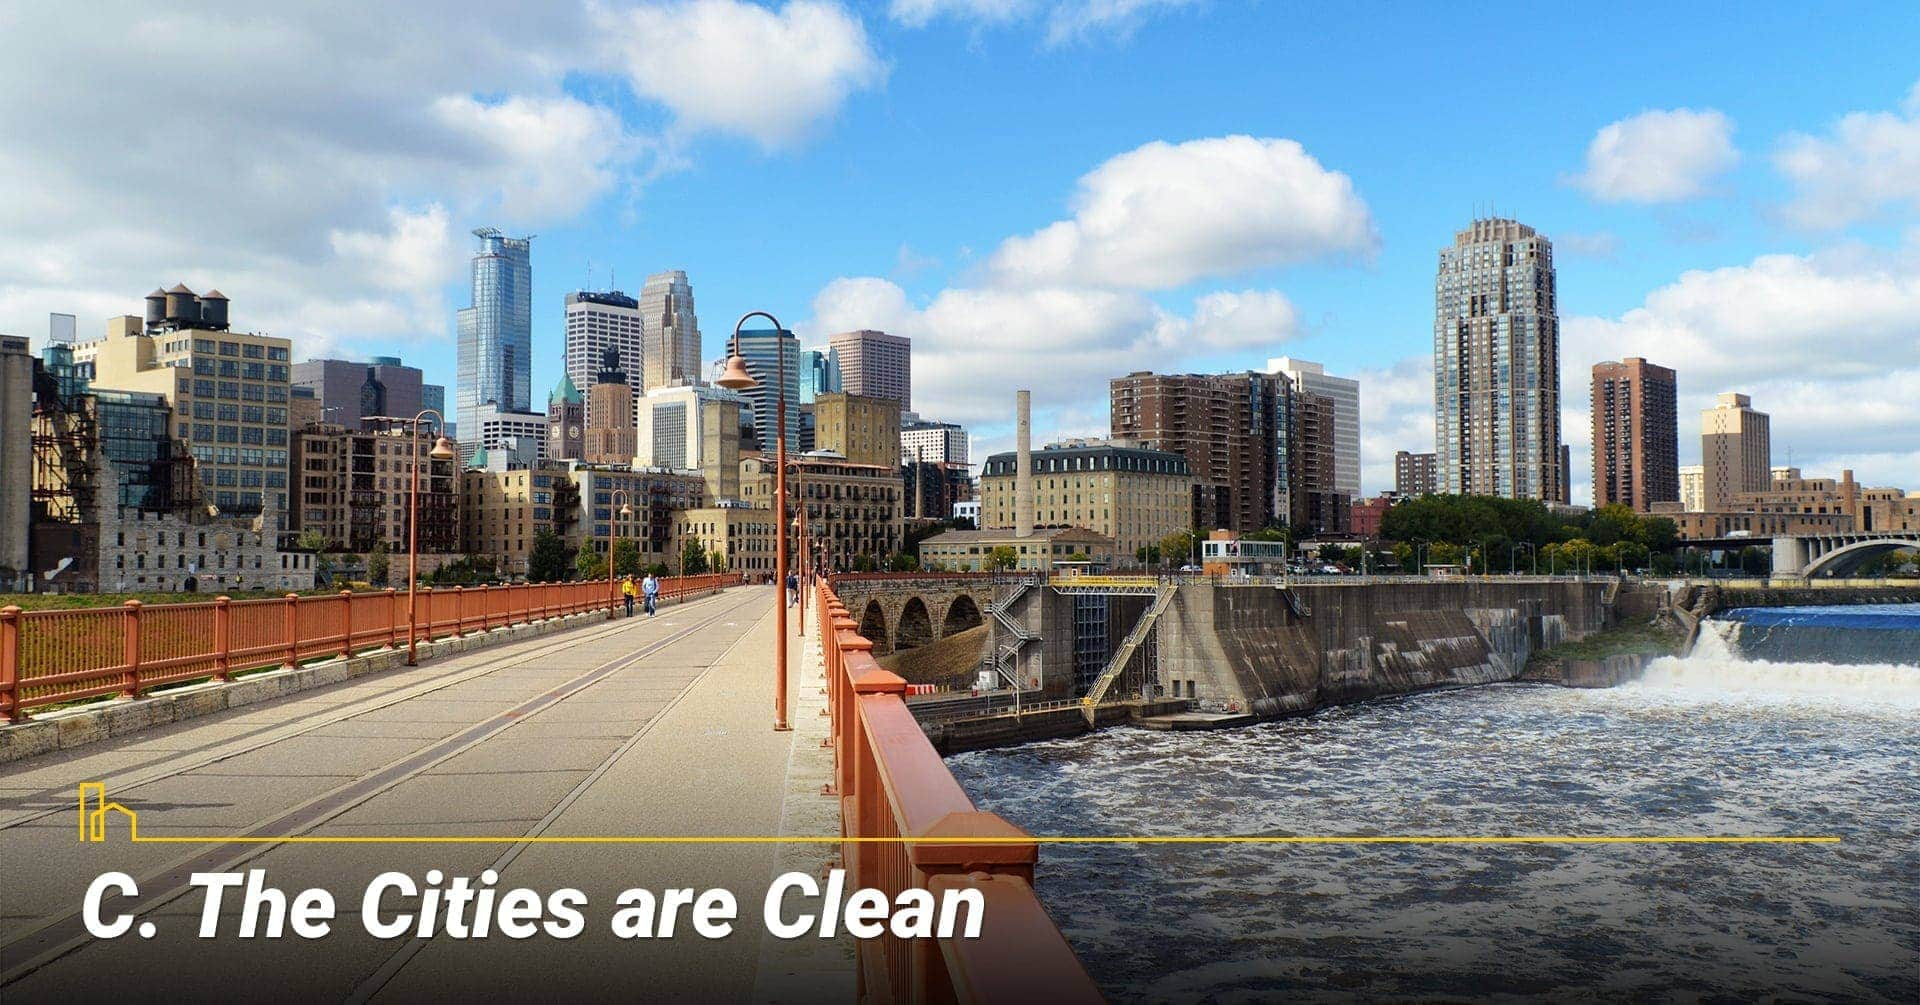 The Cities are Clean